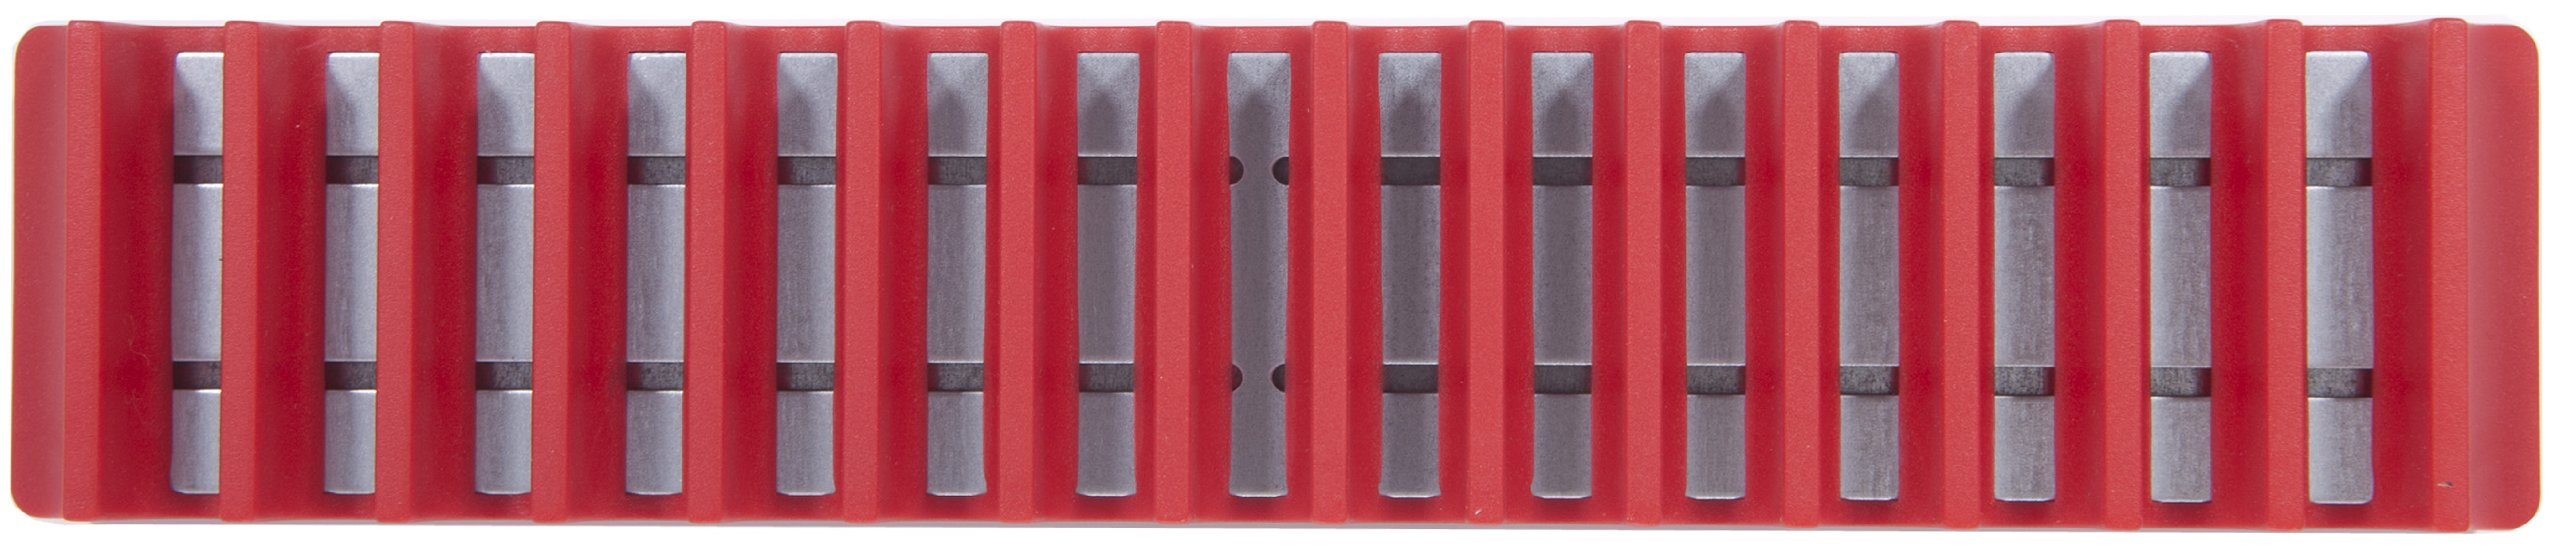 Torin Big Red Tool Organizer: Magnetic Screwdriver Rack by Torin